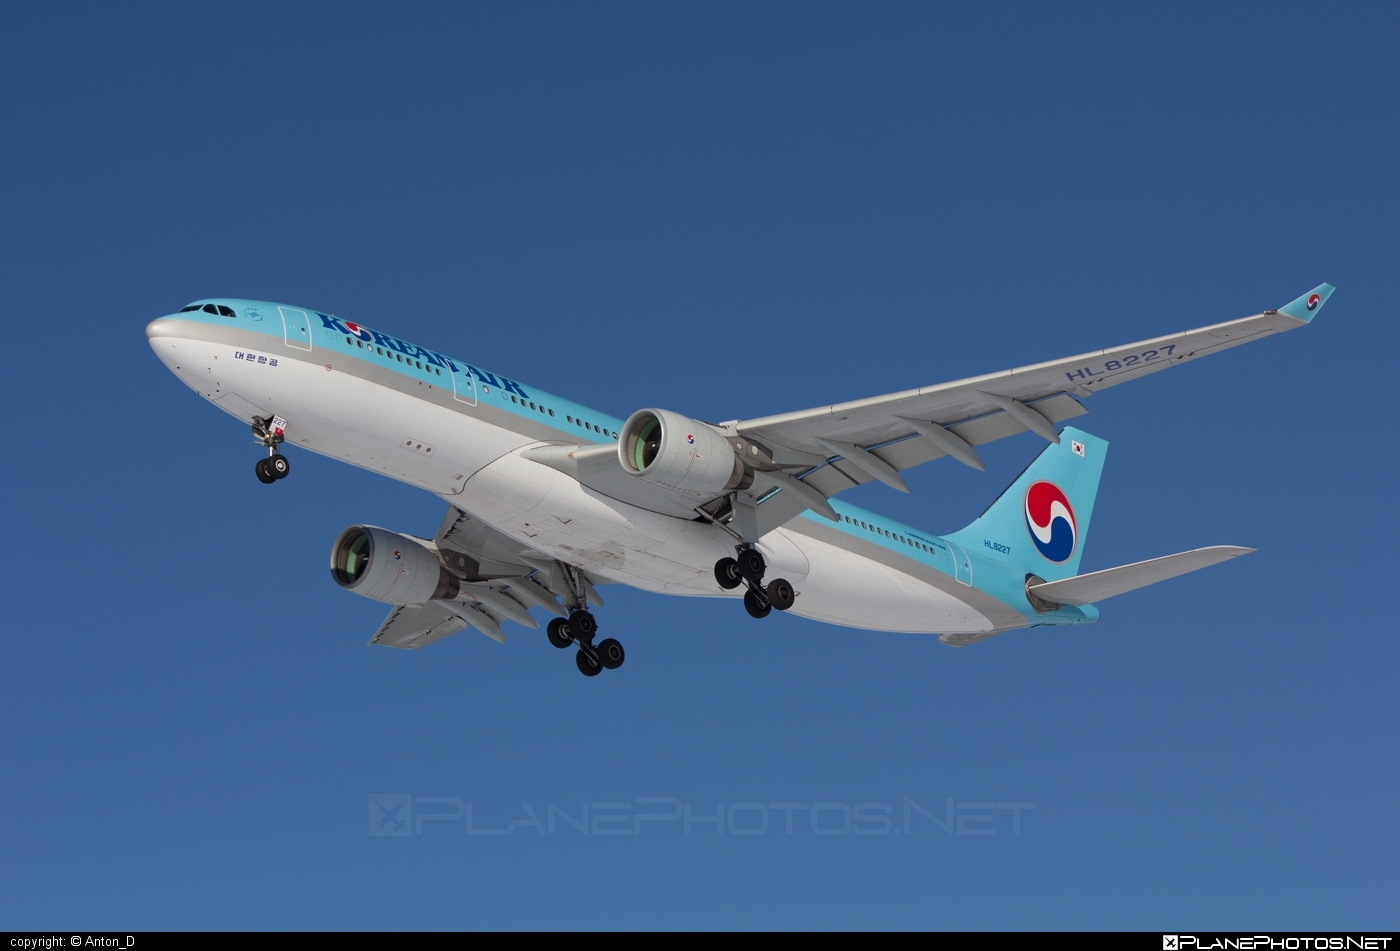 Airbus A330-223 - HL8227 operated by Korean Air #a330 #a330family #airbus #airbus330 #koreanair